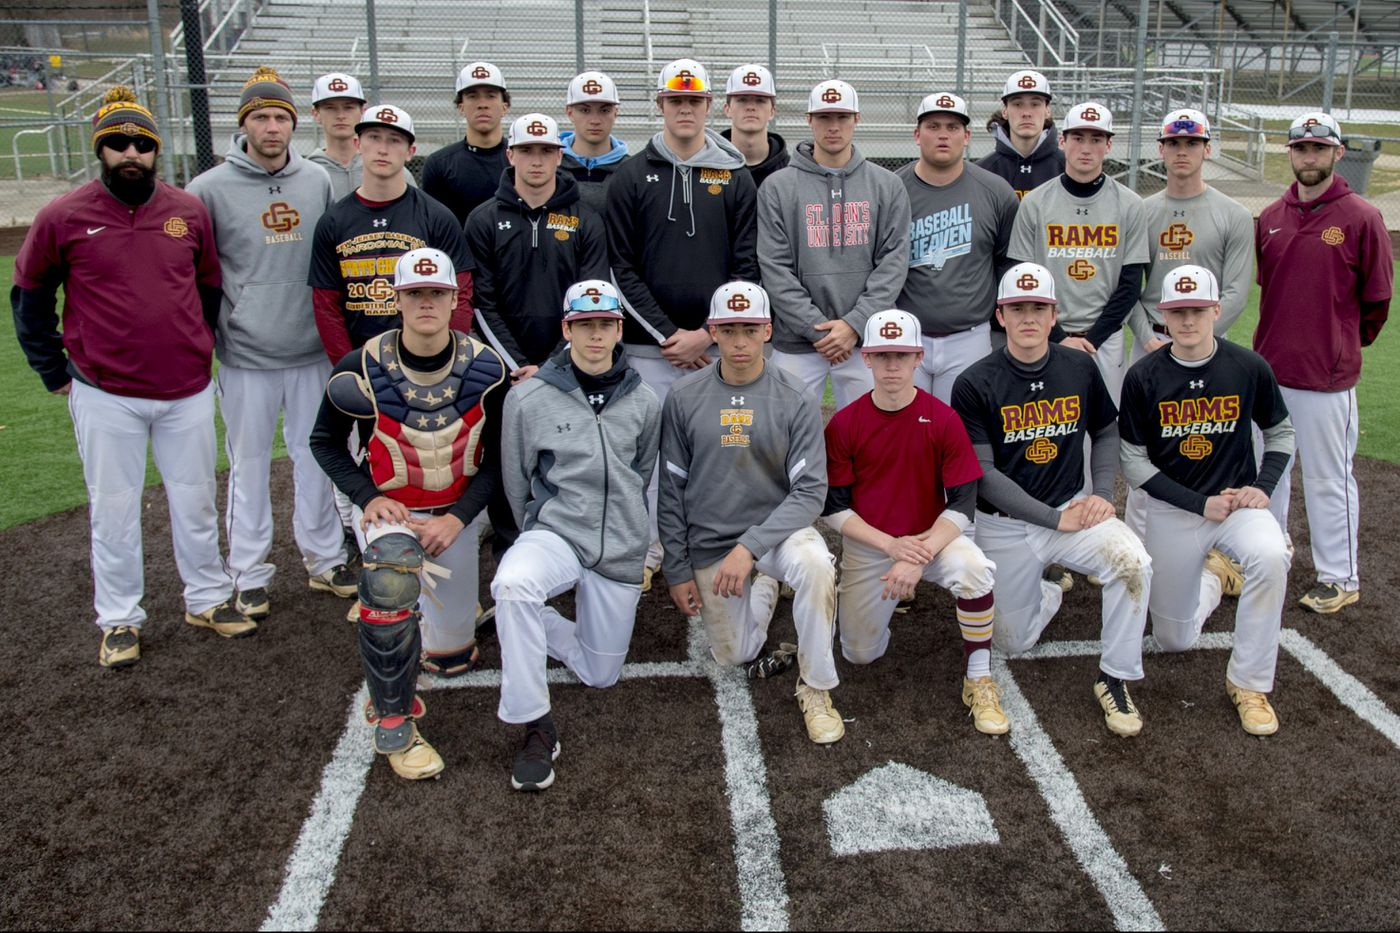 Friday's South Jersey roundup: Gloucseter Catholic advances to South Non-Public B title